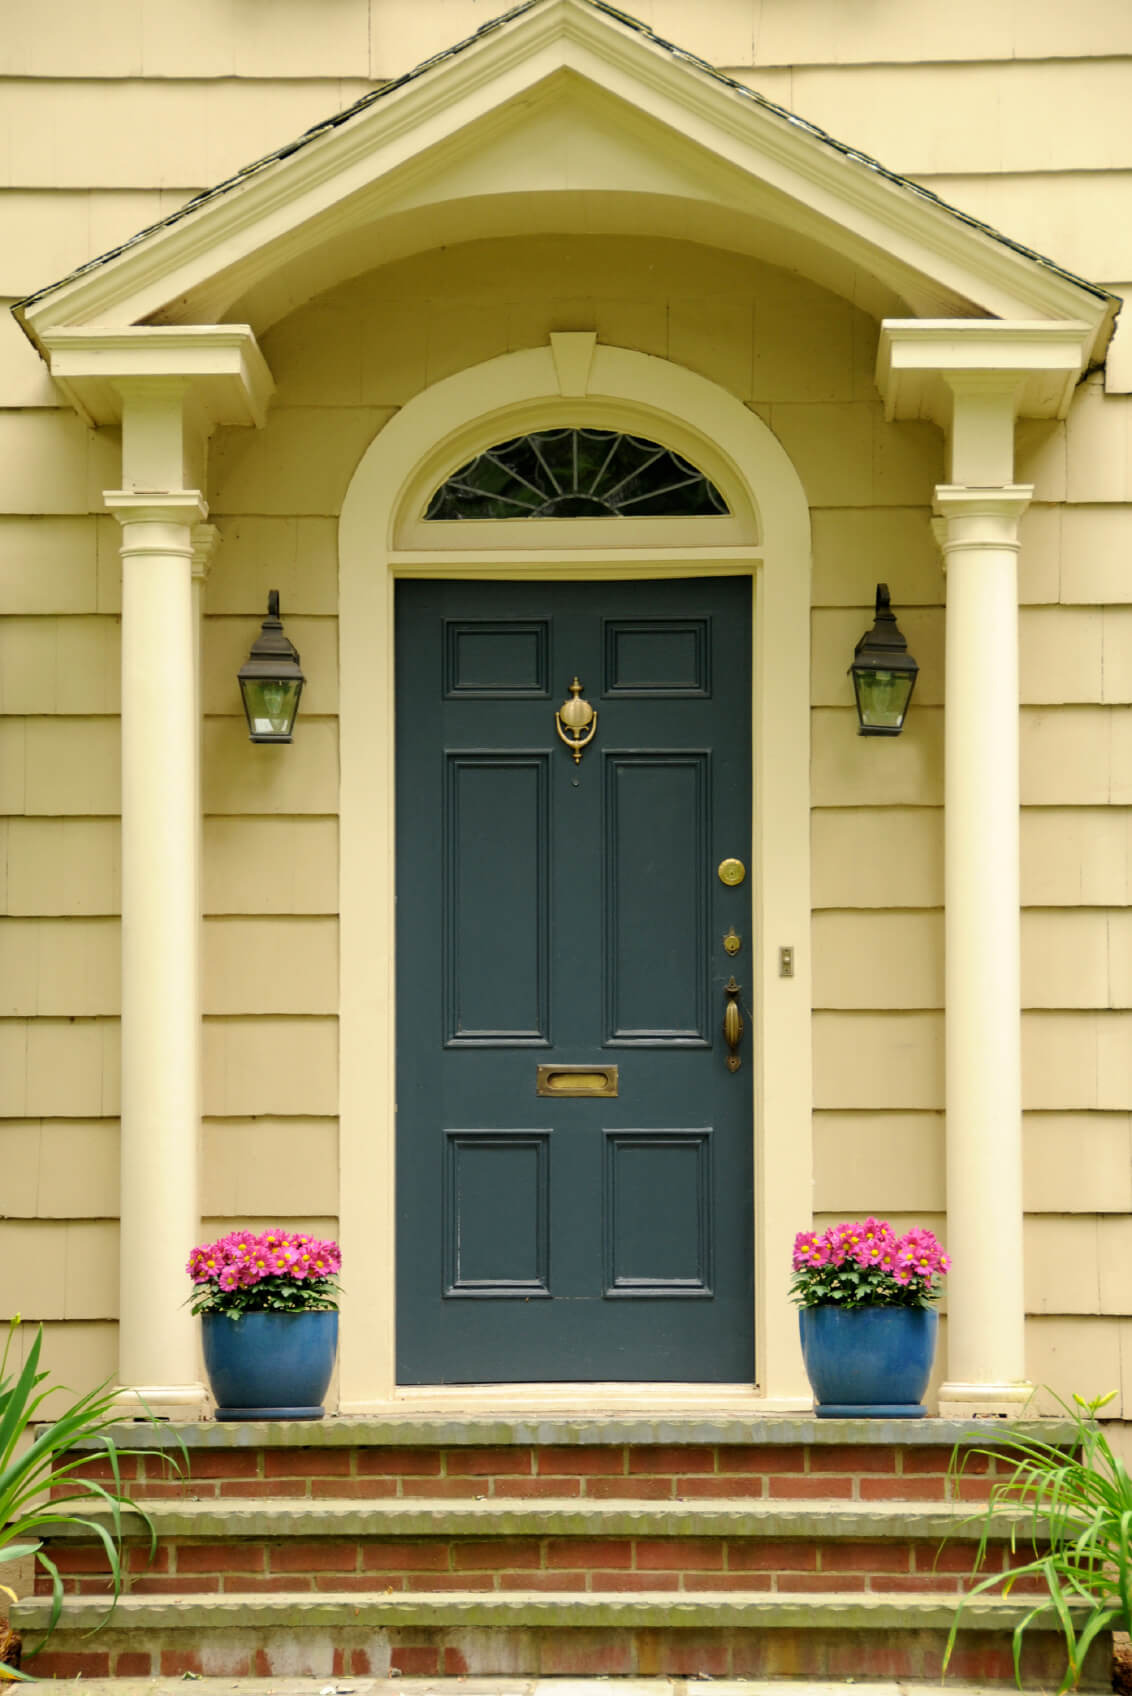 This house has a beige facade. It has a teal blue door with brass locks, handle, a door knocker, a peephole, a mail slot and a transom right above it.